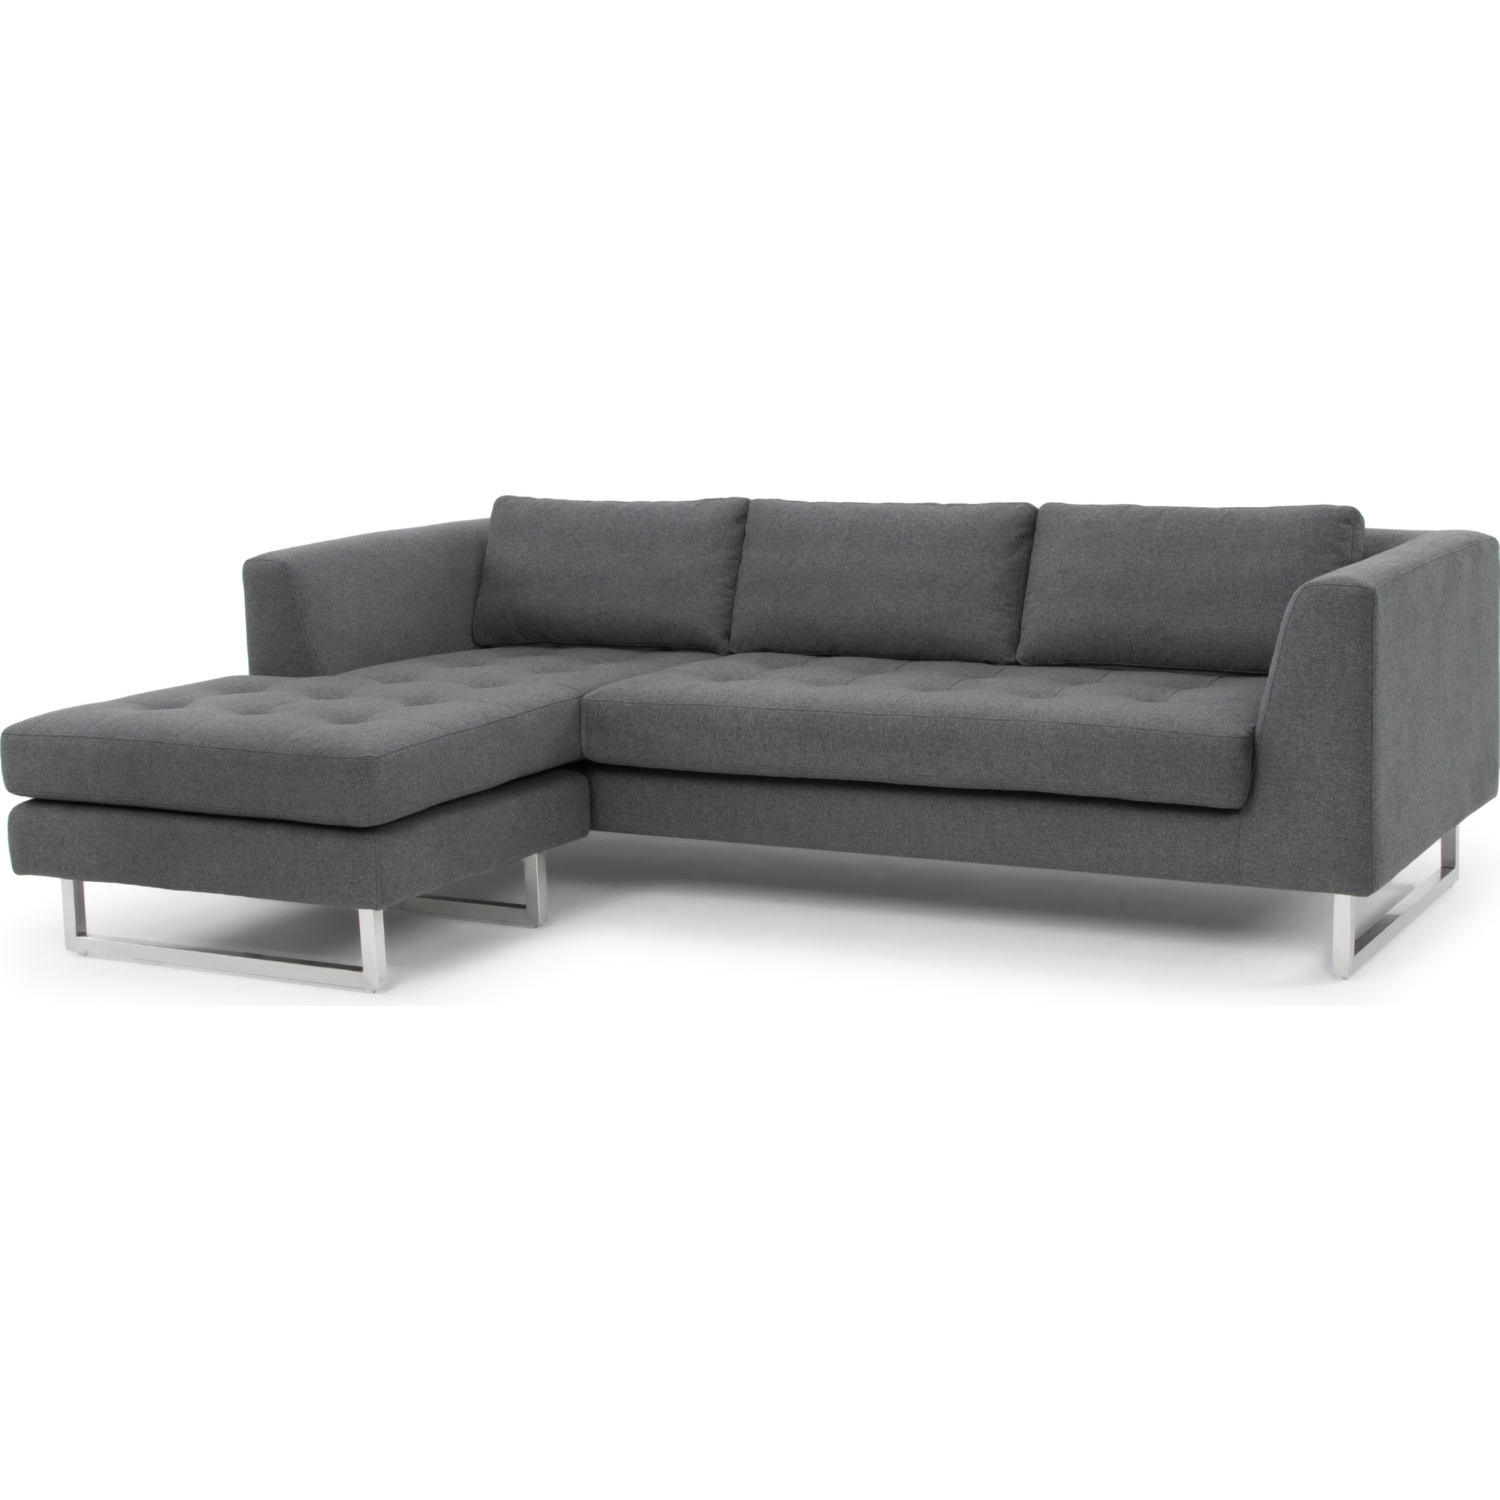 Nuevo modern furniture hgsc197 matthew sectional sofa in for Shale sofa bed